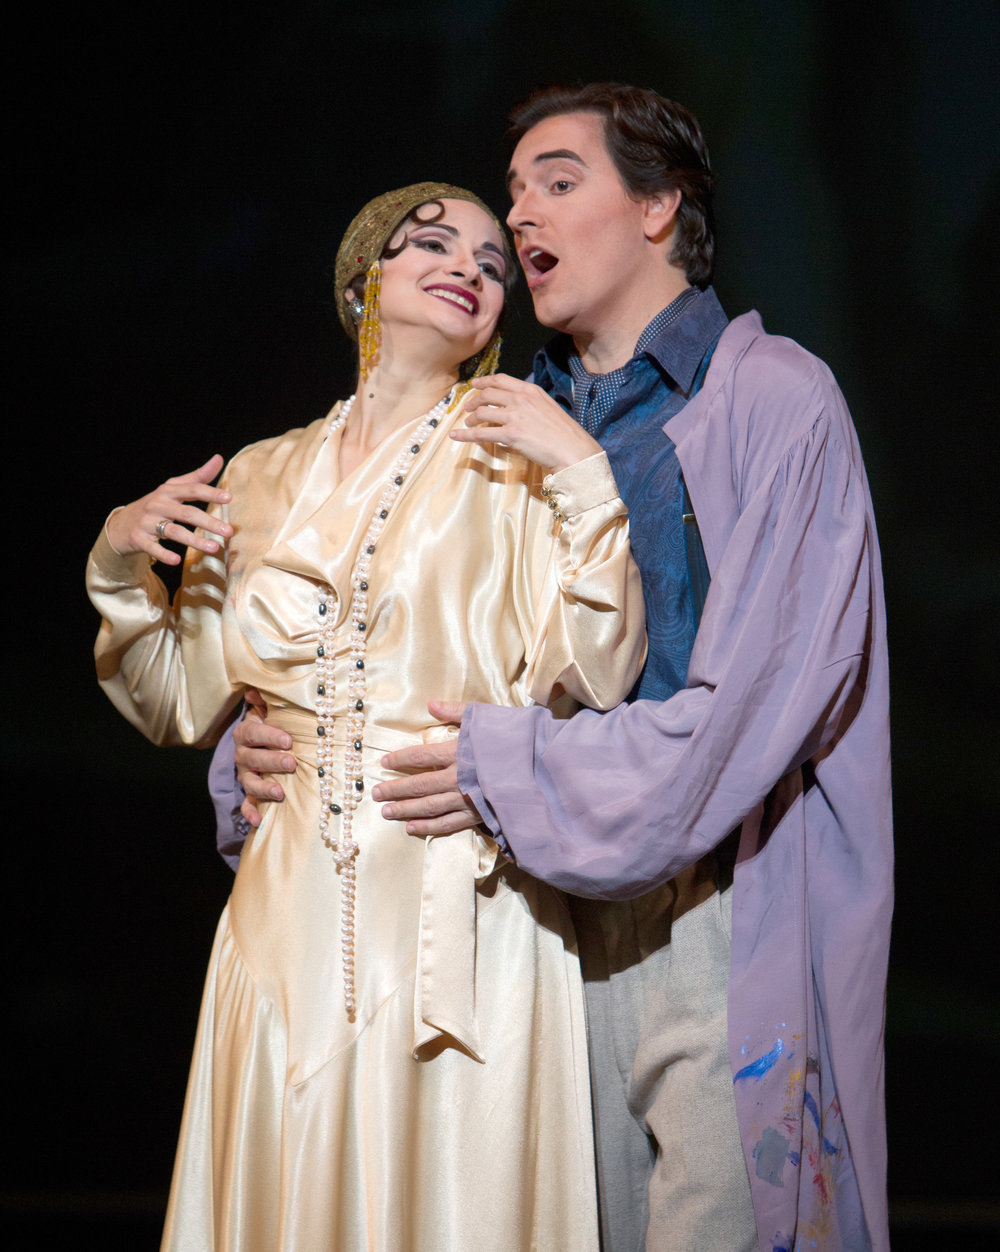 Patrick Miller and his wife, soprano Veronica Mitina, as Cavaradossi and Tosca, respectively, in Tosca with Syracuse Opera. Photo by Doug Wonders.